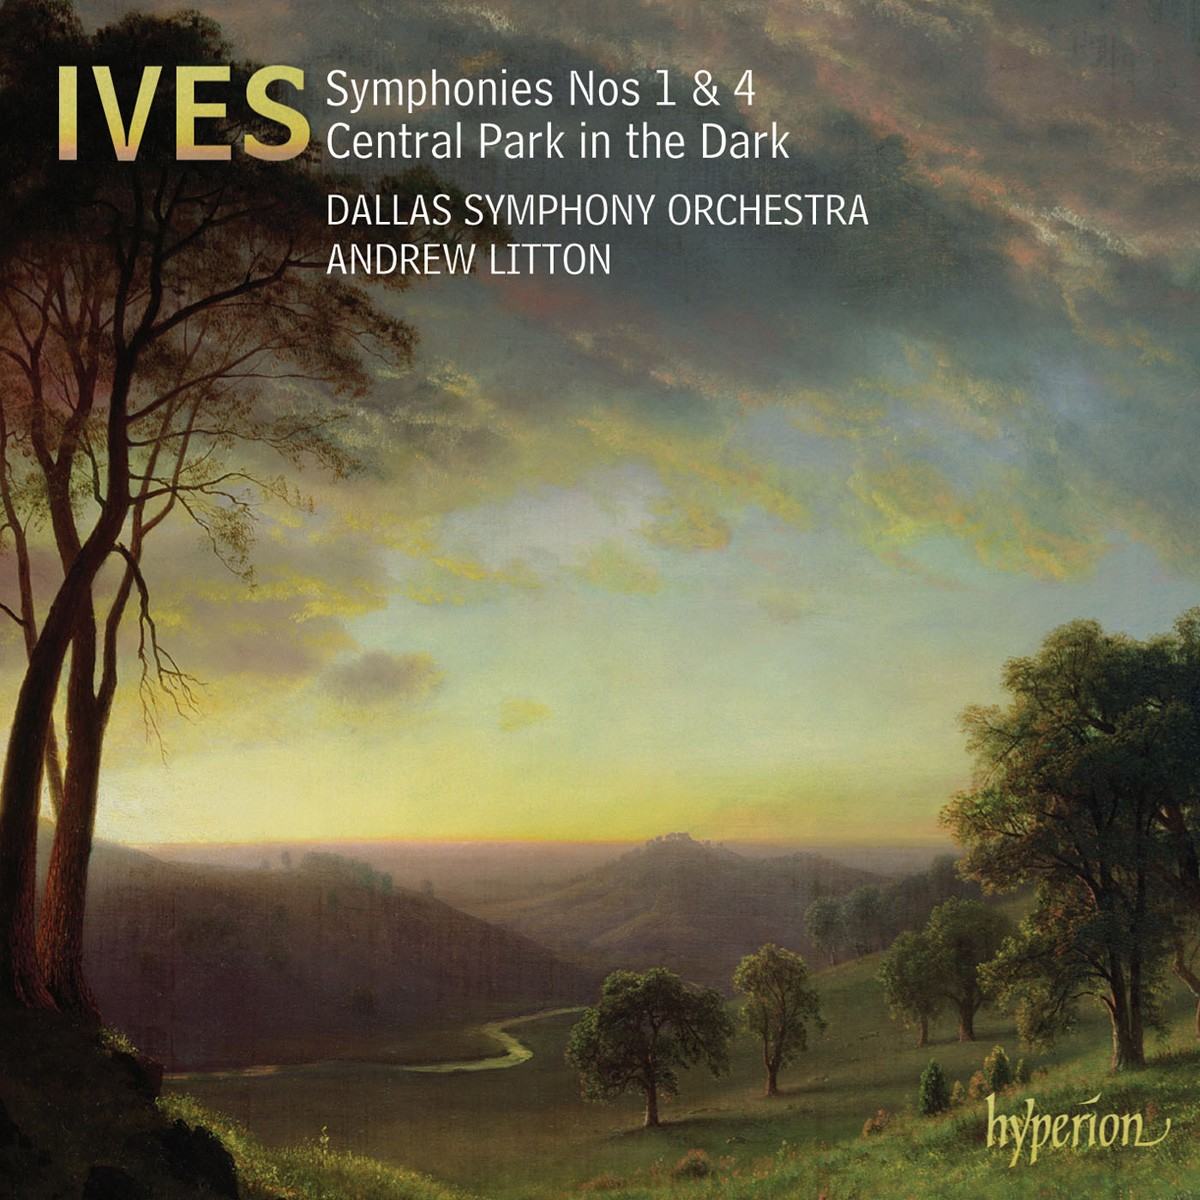 DASO - Ives: Symphonies Nos. 1 & 4; Central Park in the Dark